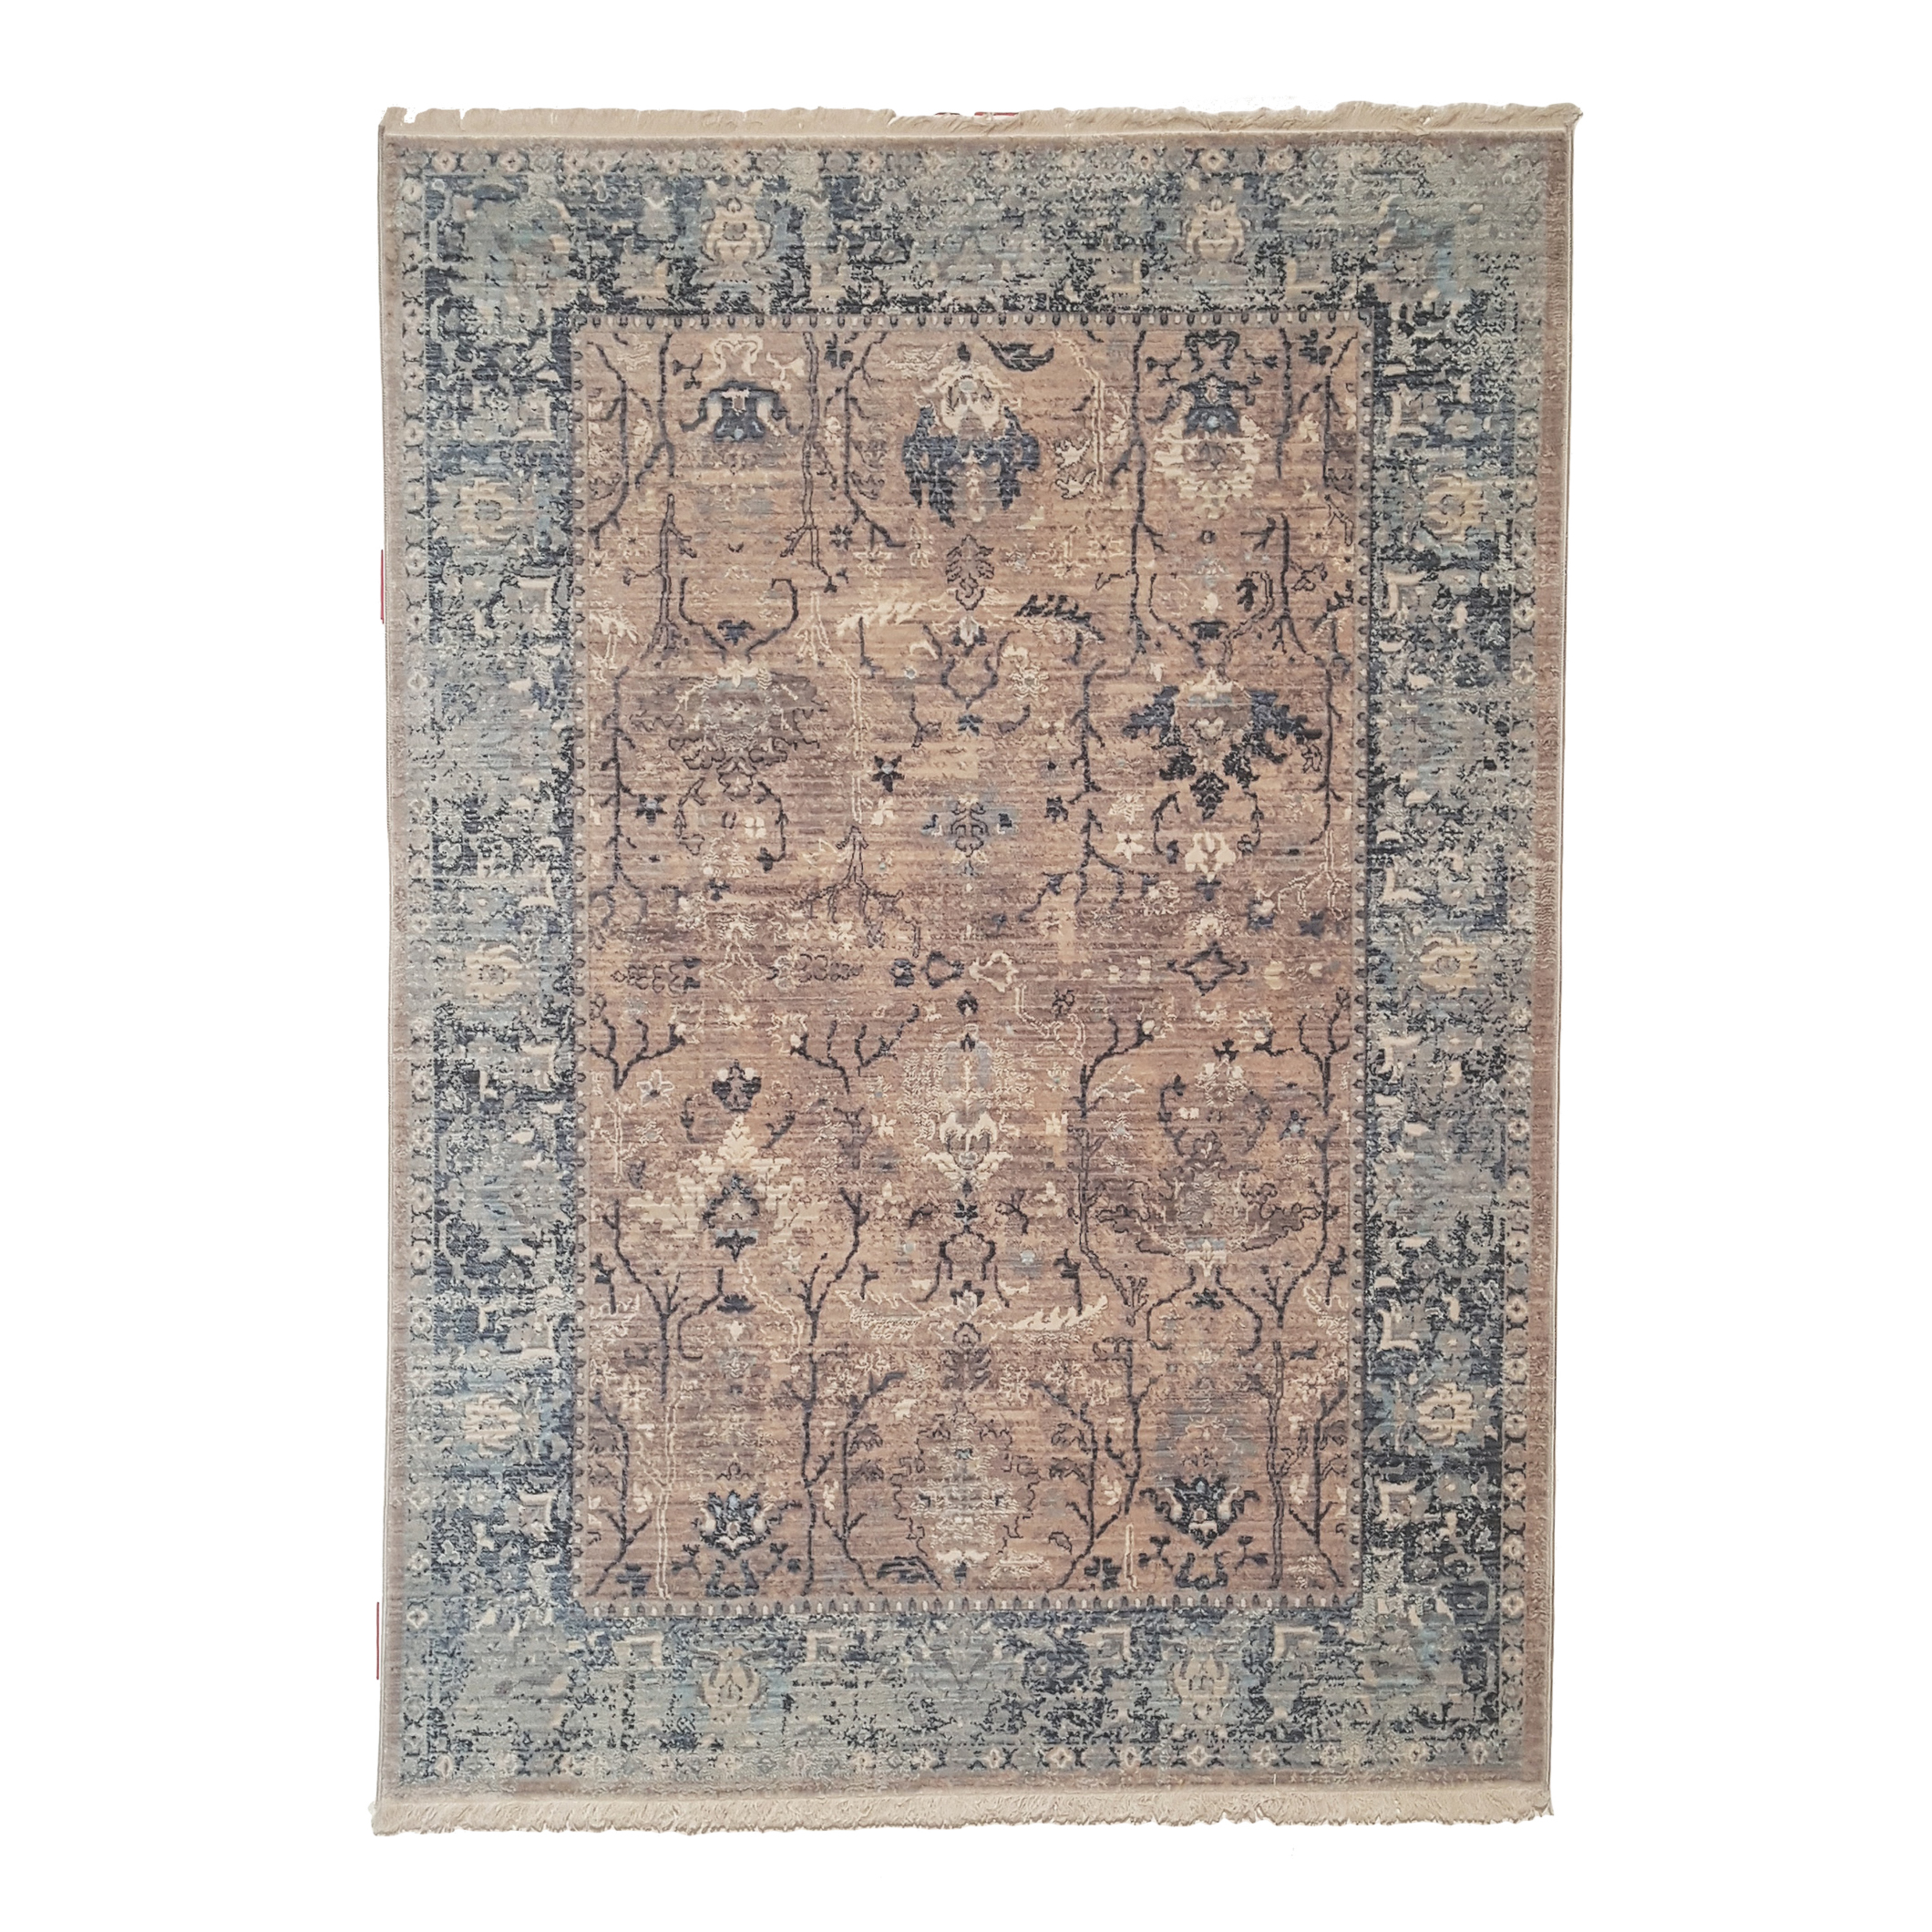 NUETRAL TULIPA Turkish Seasons Rug from Morelli Rugs